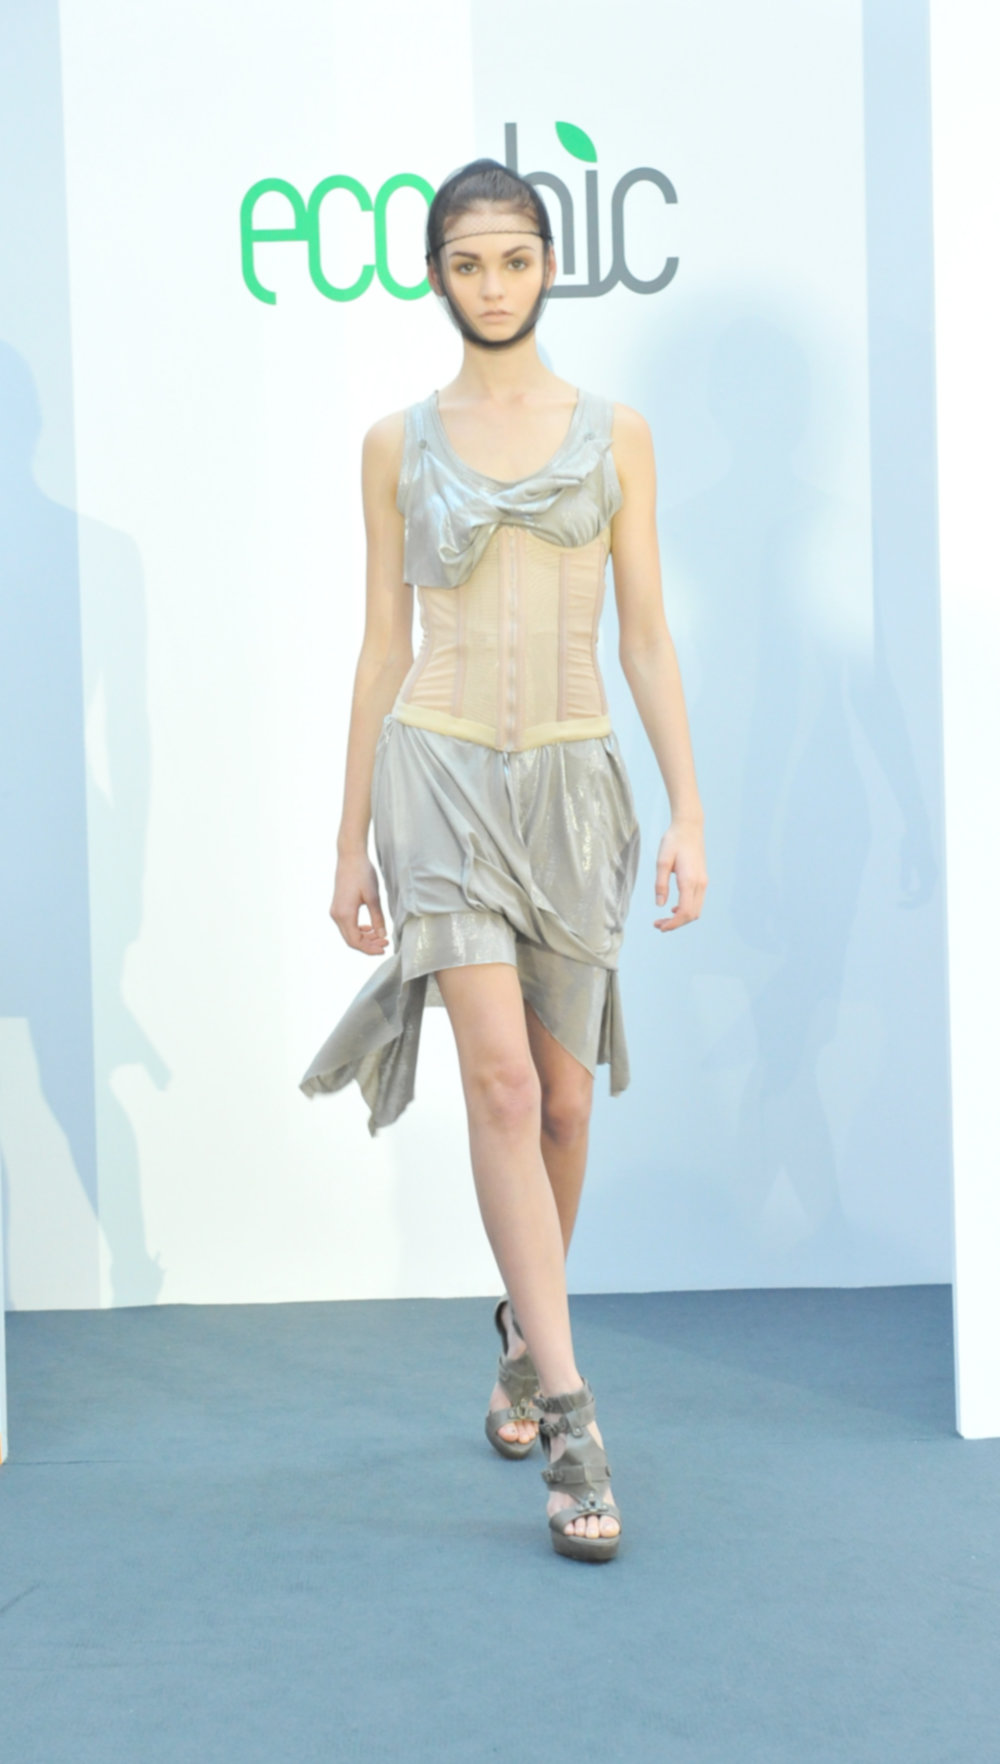 11. Ciel silver top and skirt (recycled post manufactured waste materials).jpg